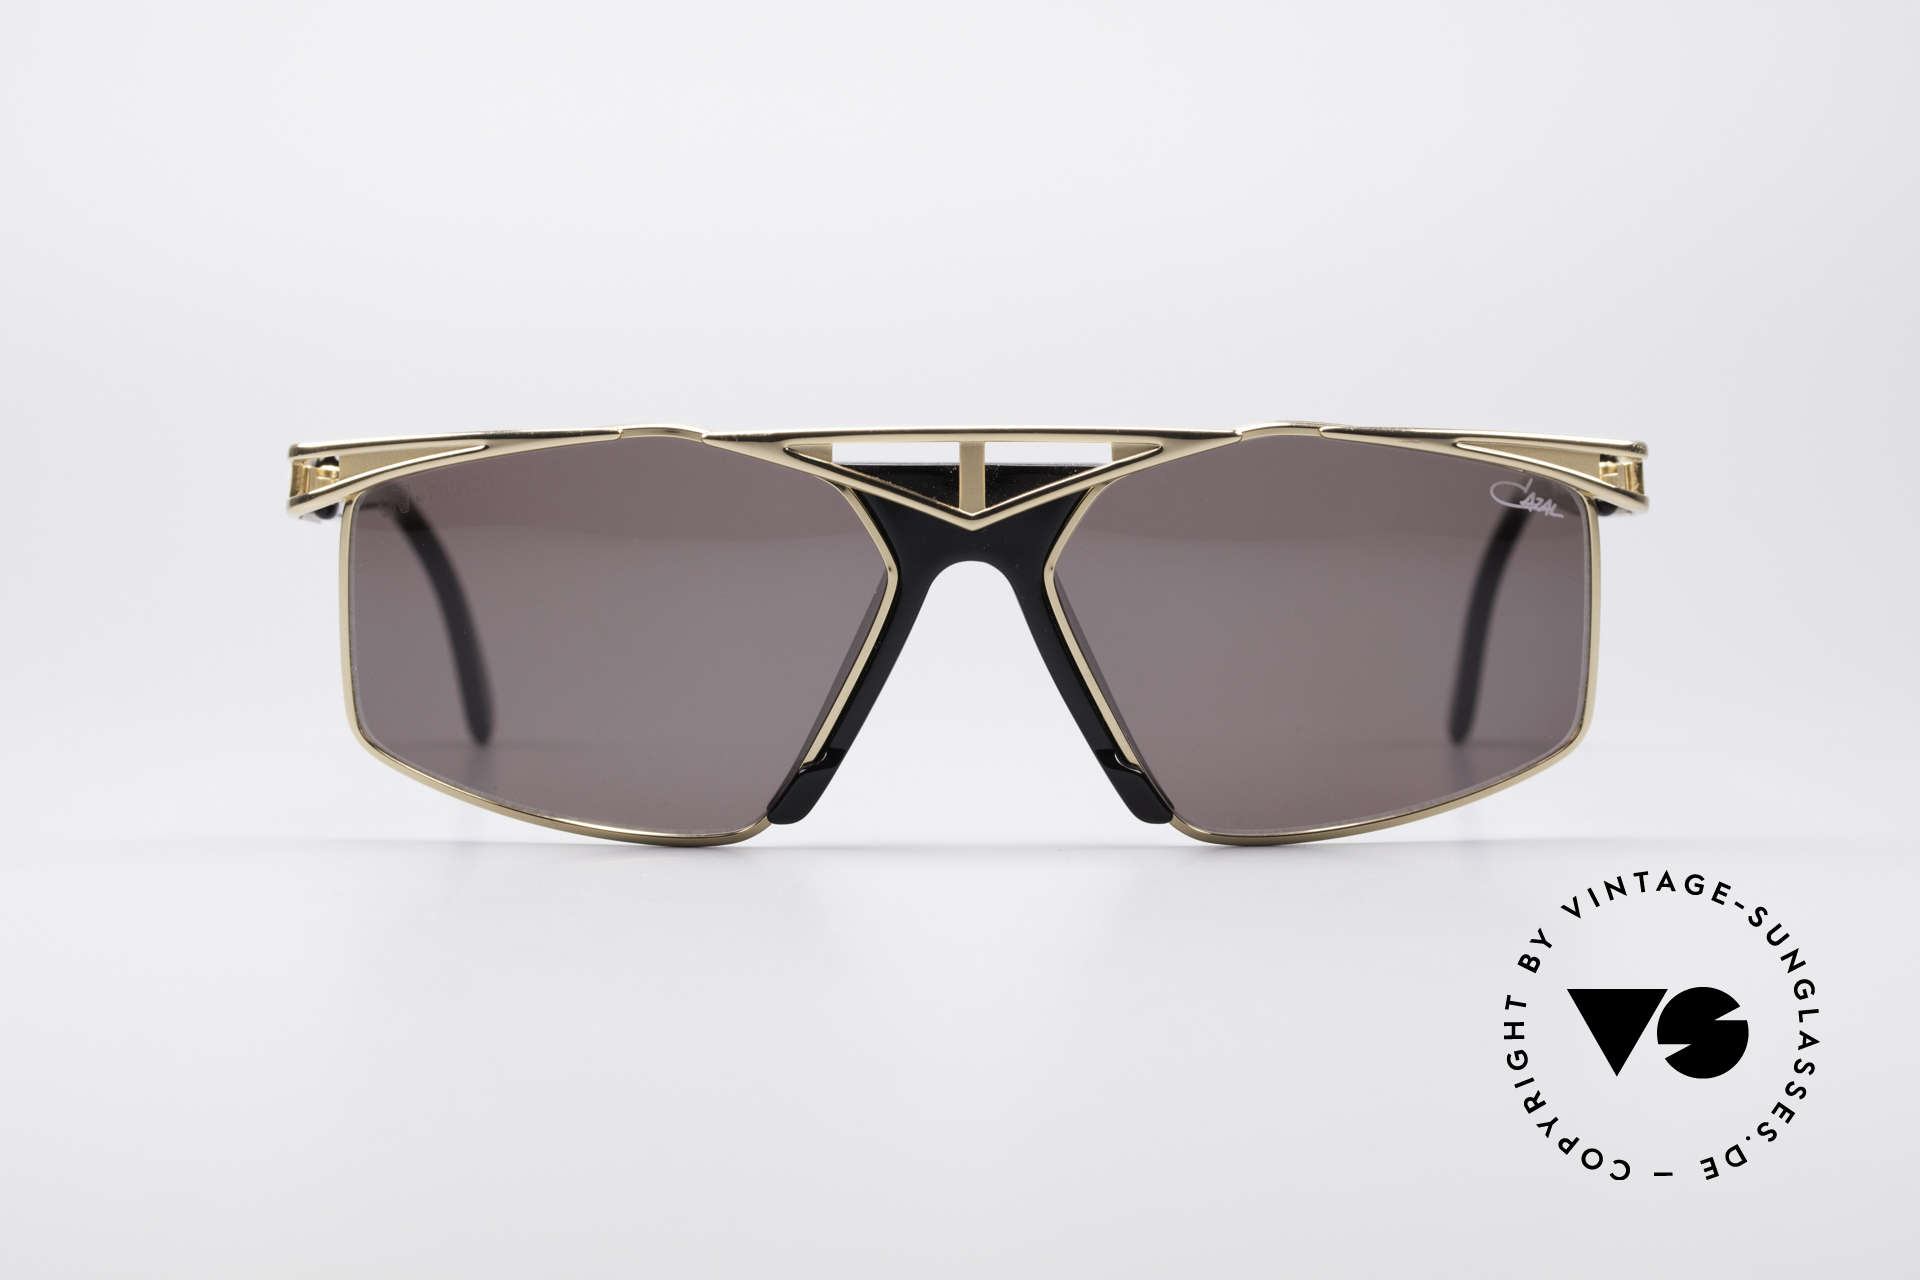 Cazal 962 Sporty Designer Shades, top wearing comfort thanks to 1st class craftsmanship, Made for Men and Women